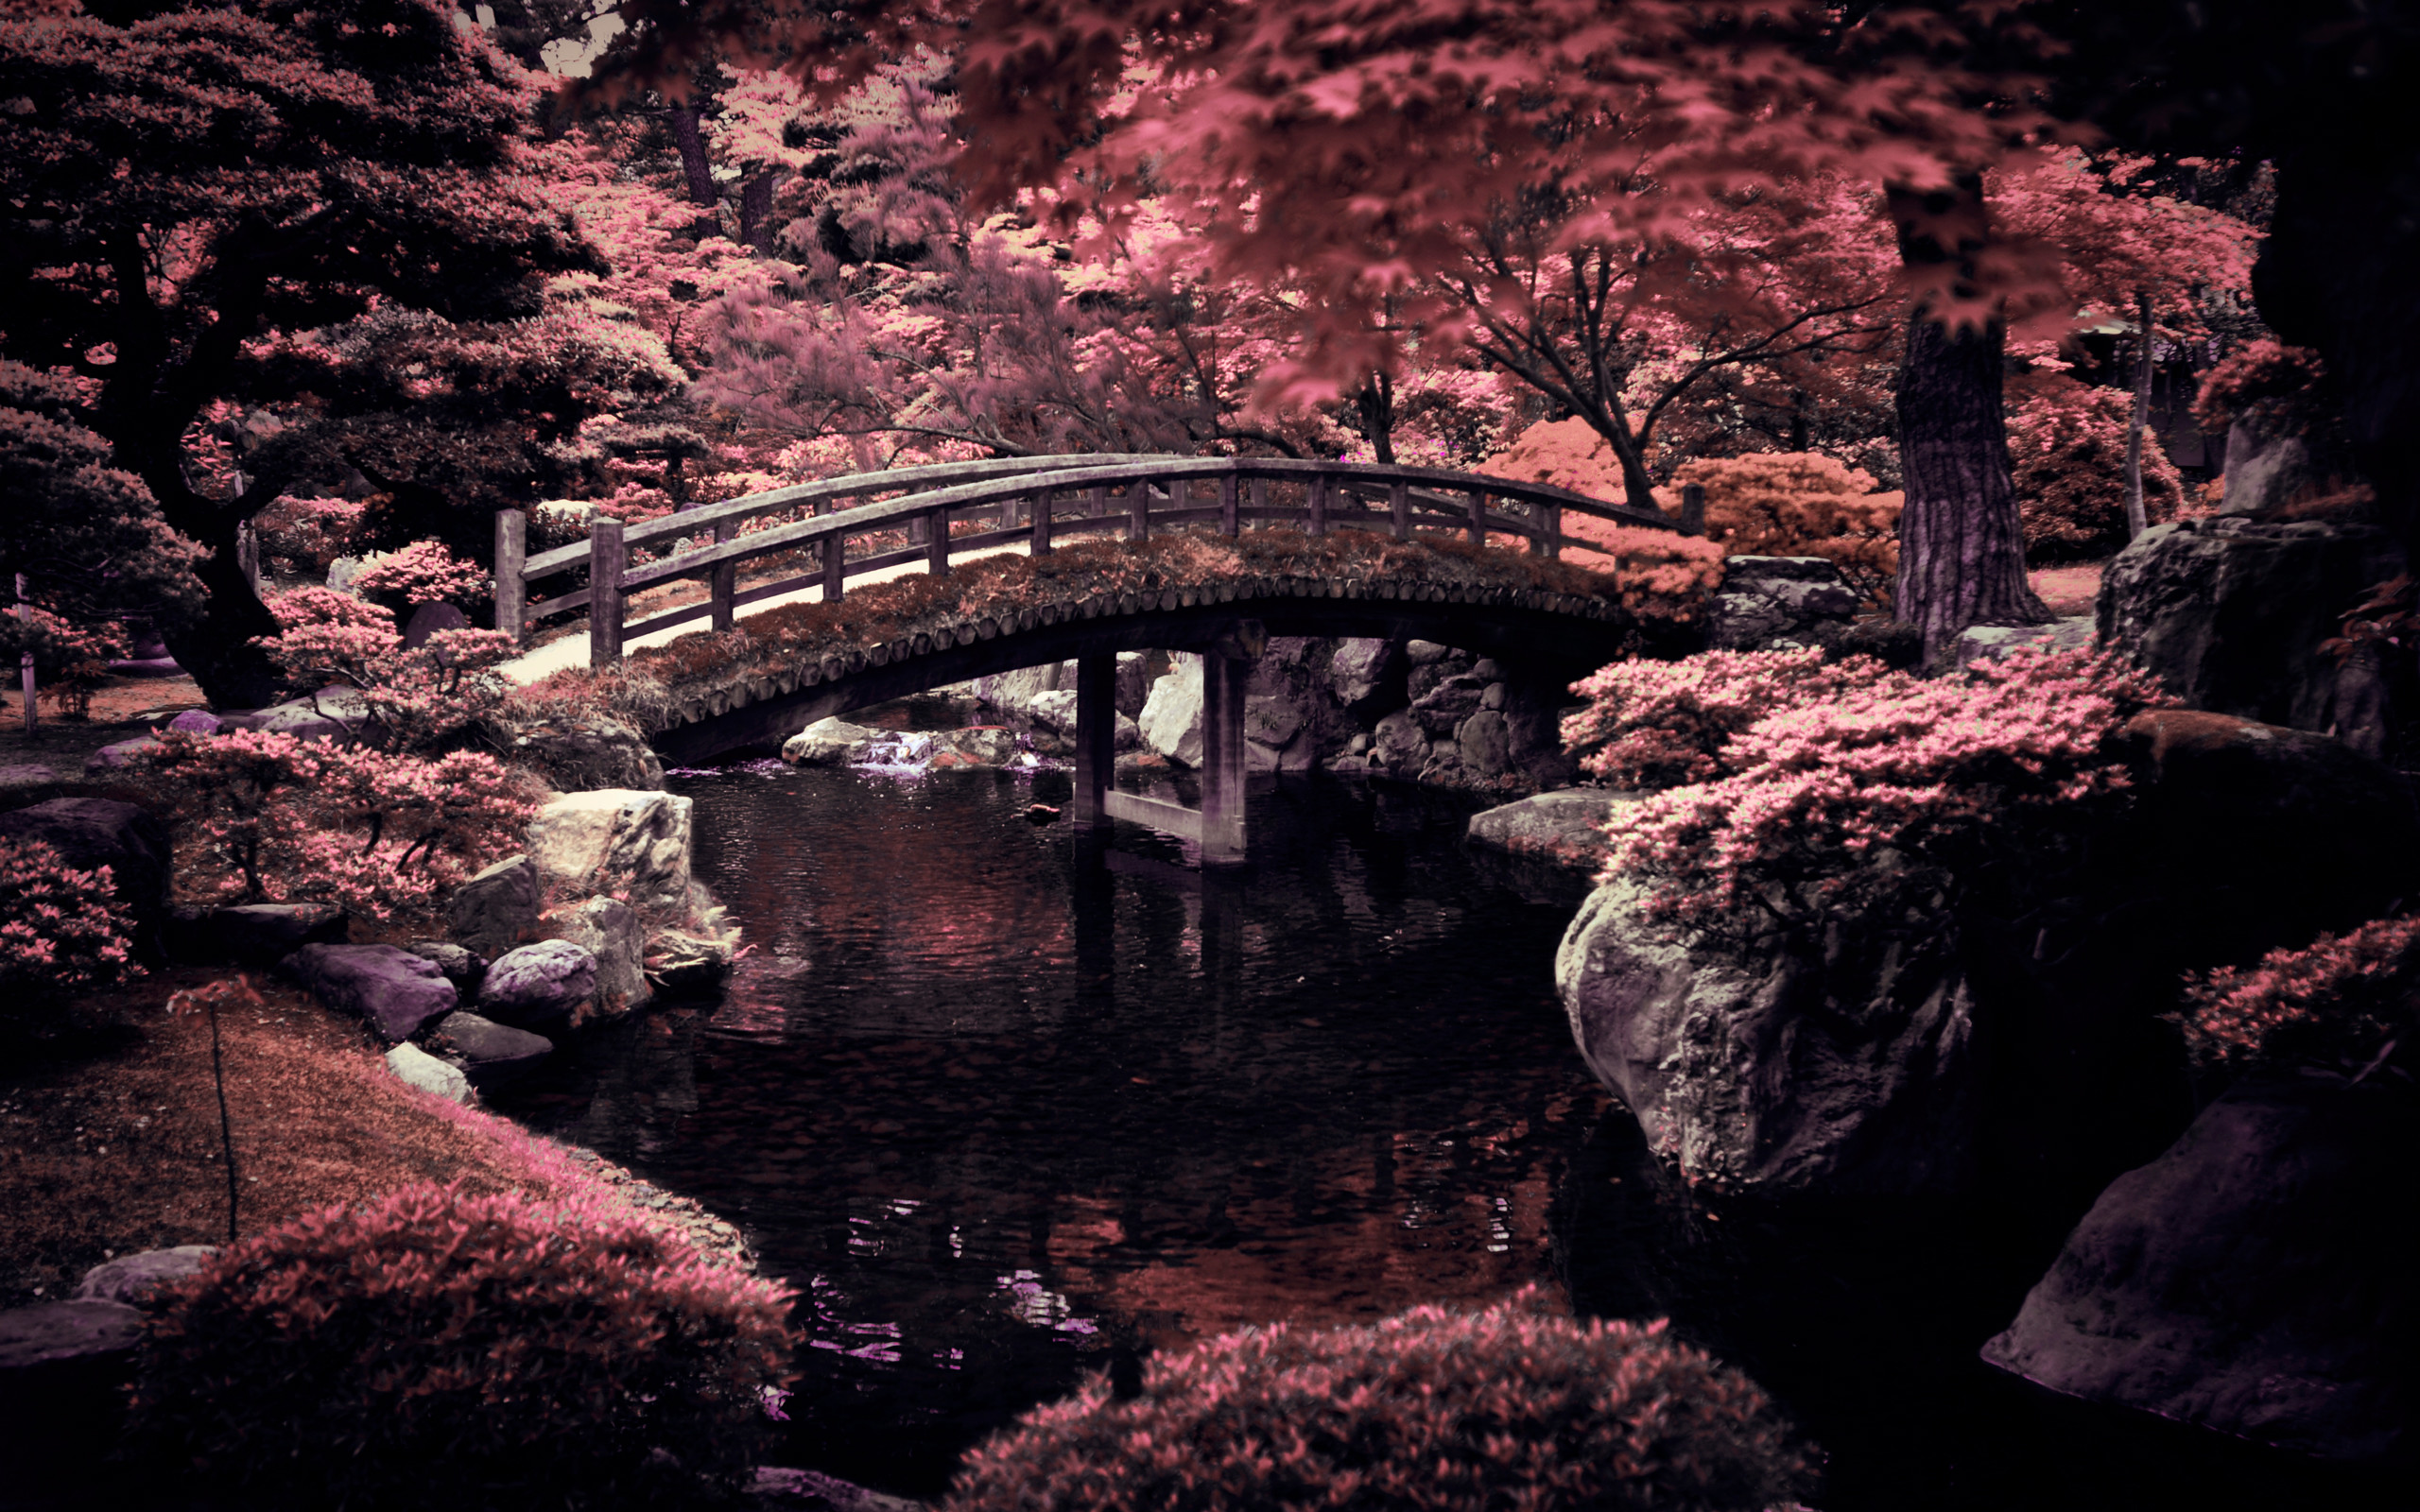 2560x1600 Imperial Garden Japan Wallpaper Desktop